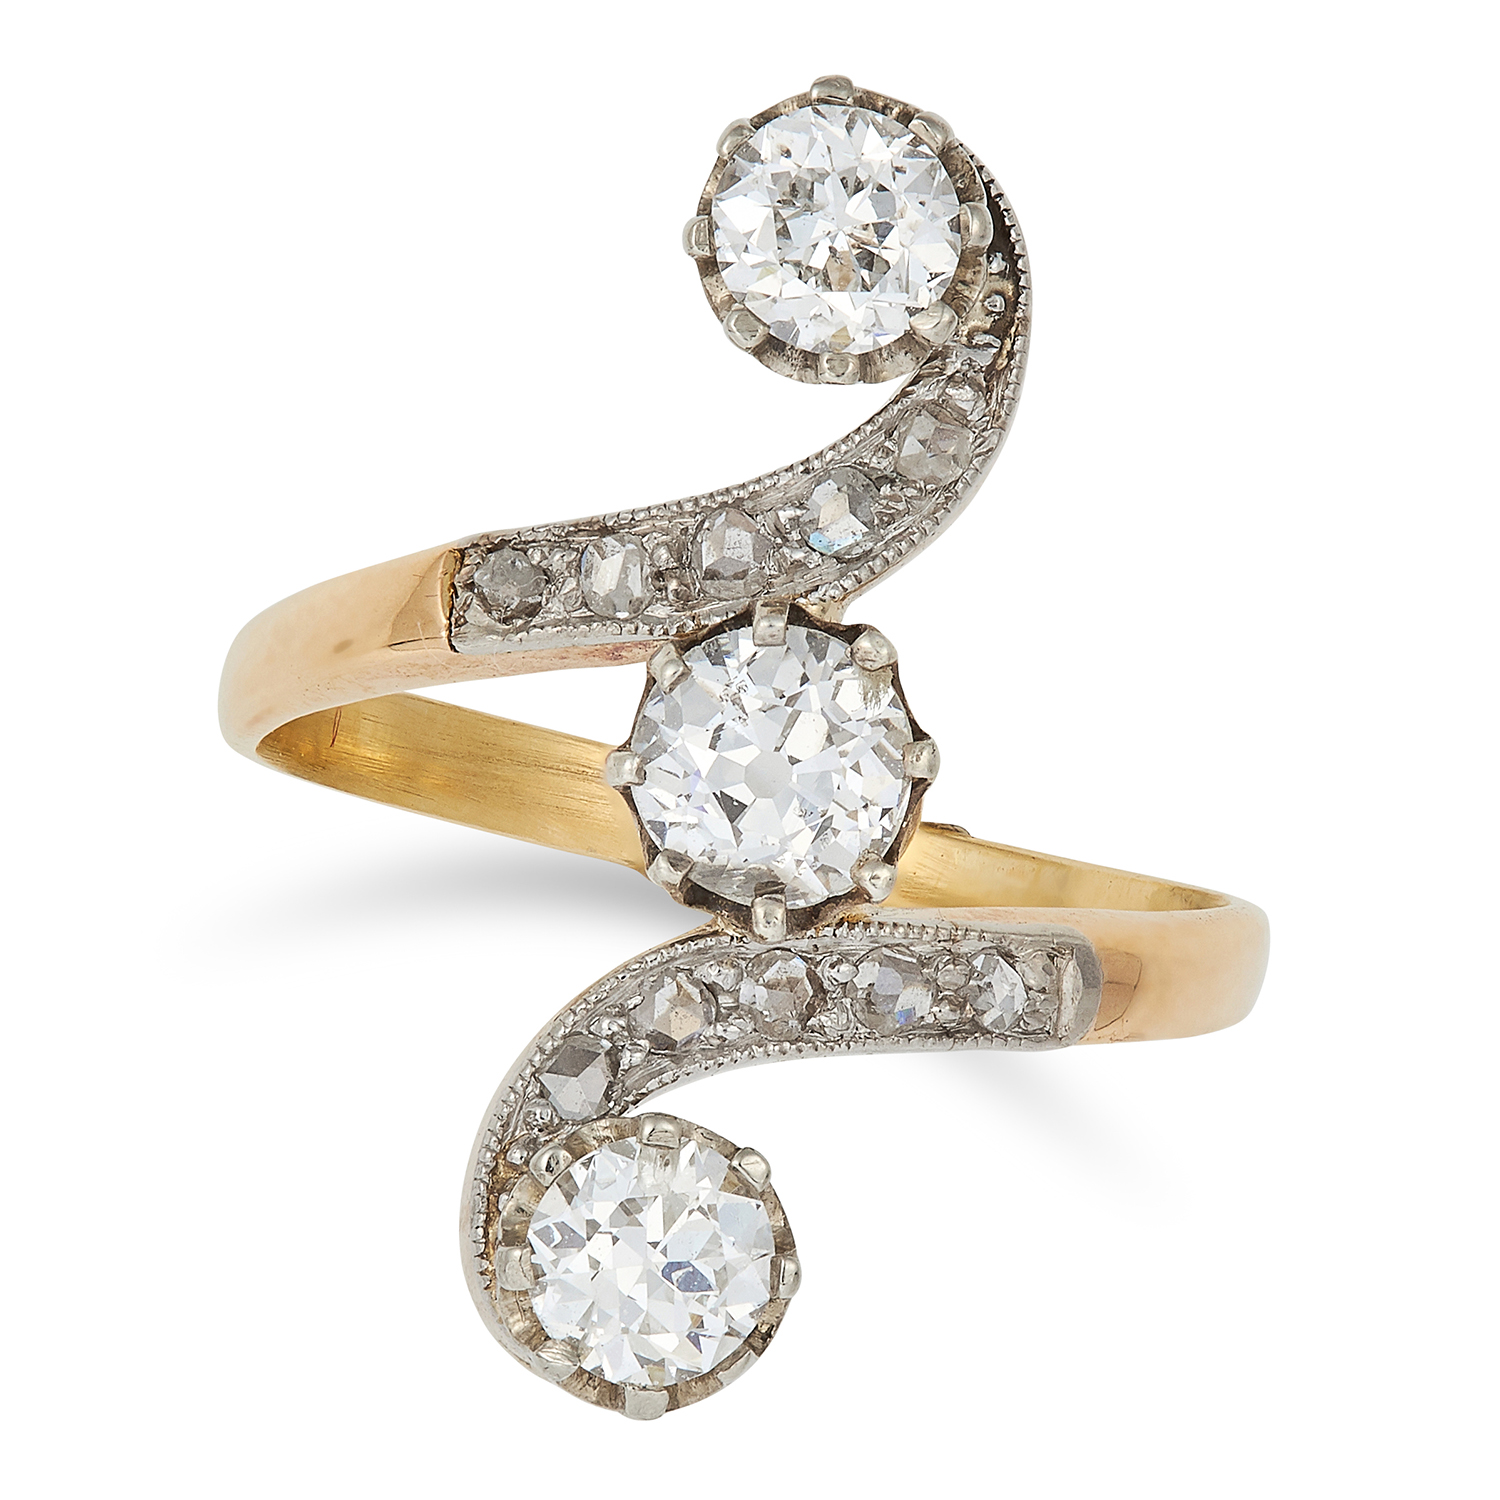 Los 4 - ANTIQUE DIAMOND DRESS RING set with round and rose cut diamonds in twisted design, size J / 4.5,